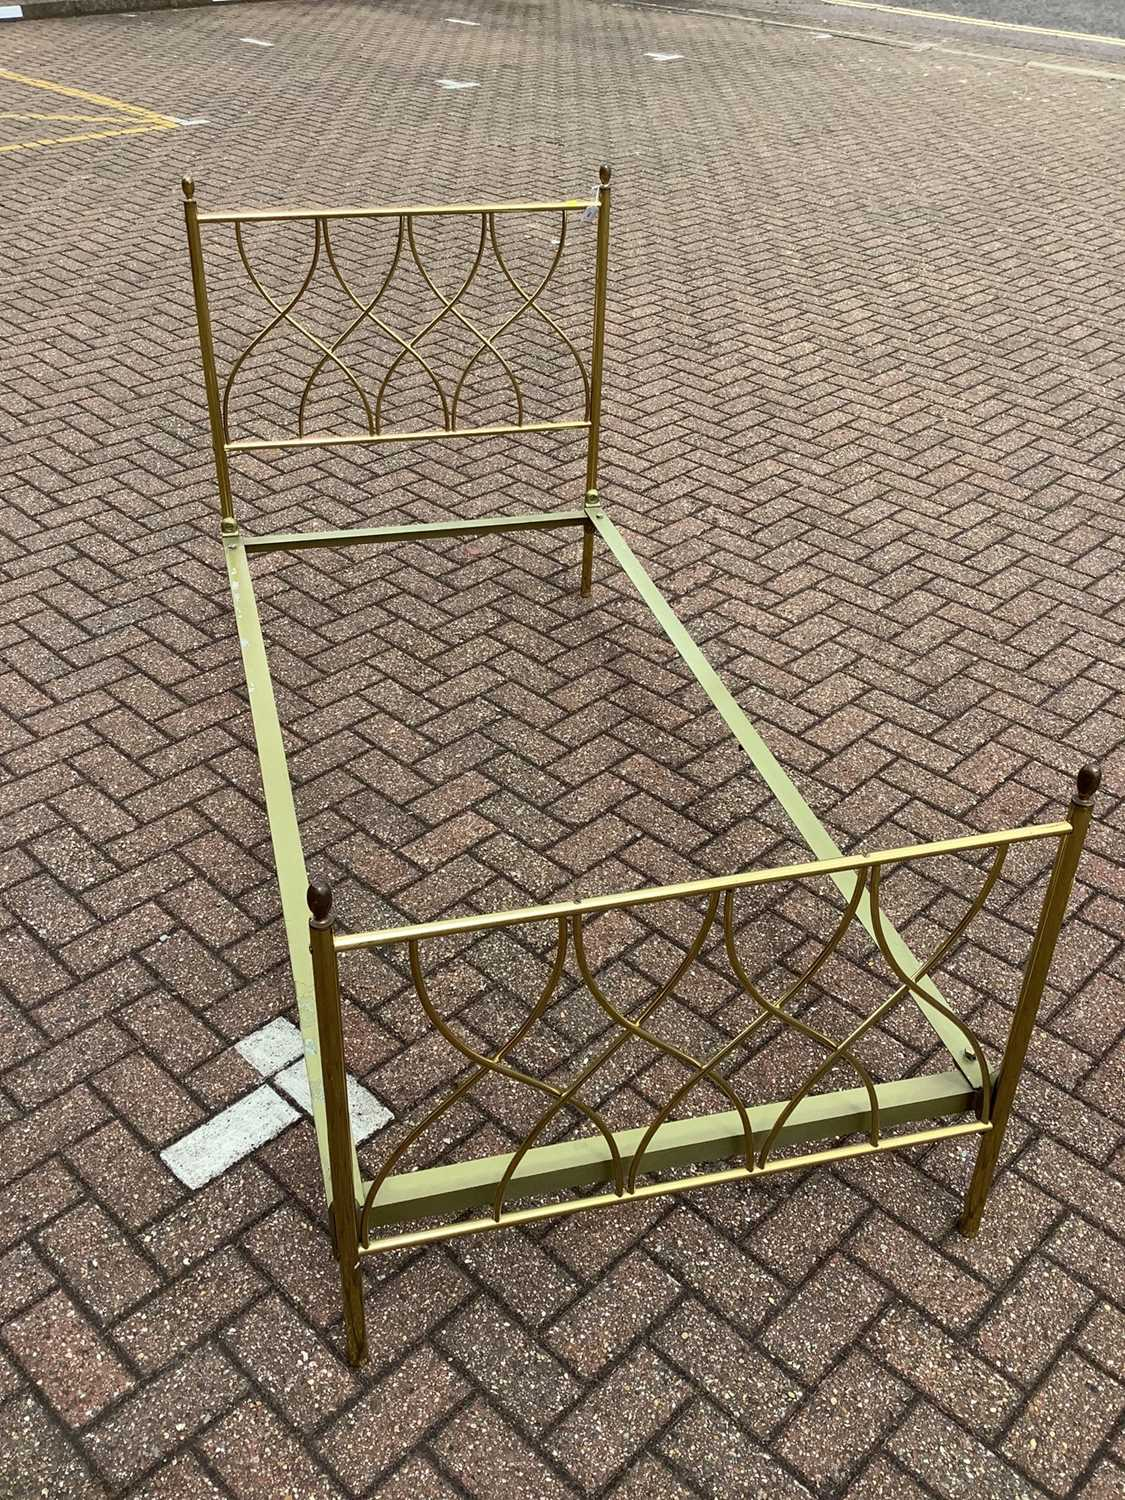 Brass single bed with side irons, 89cm wide